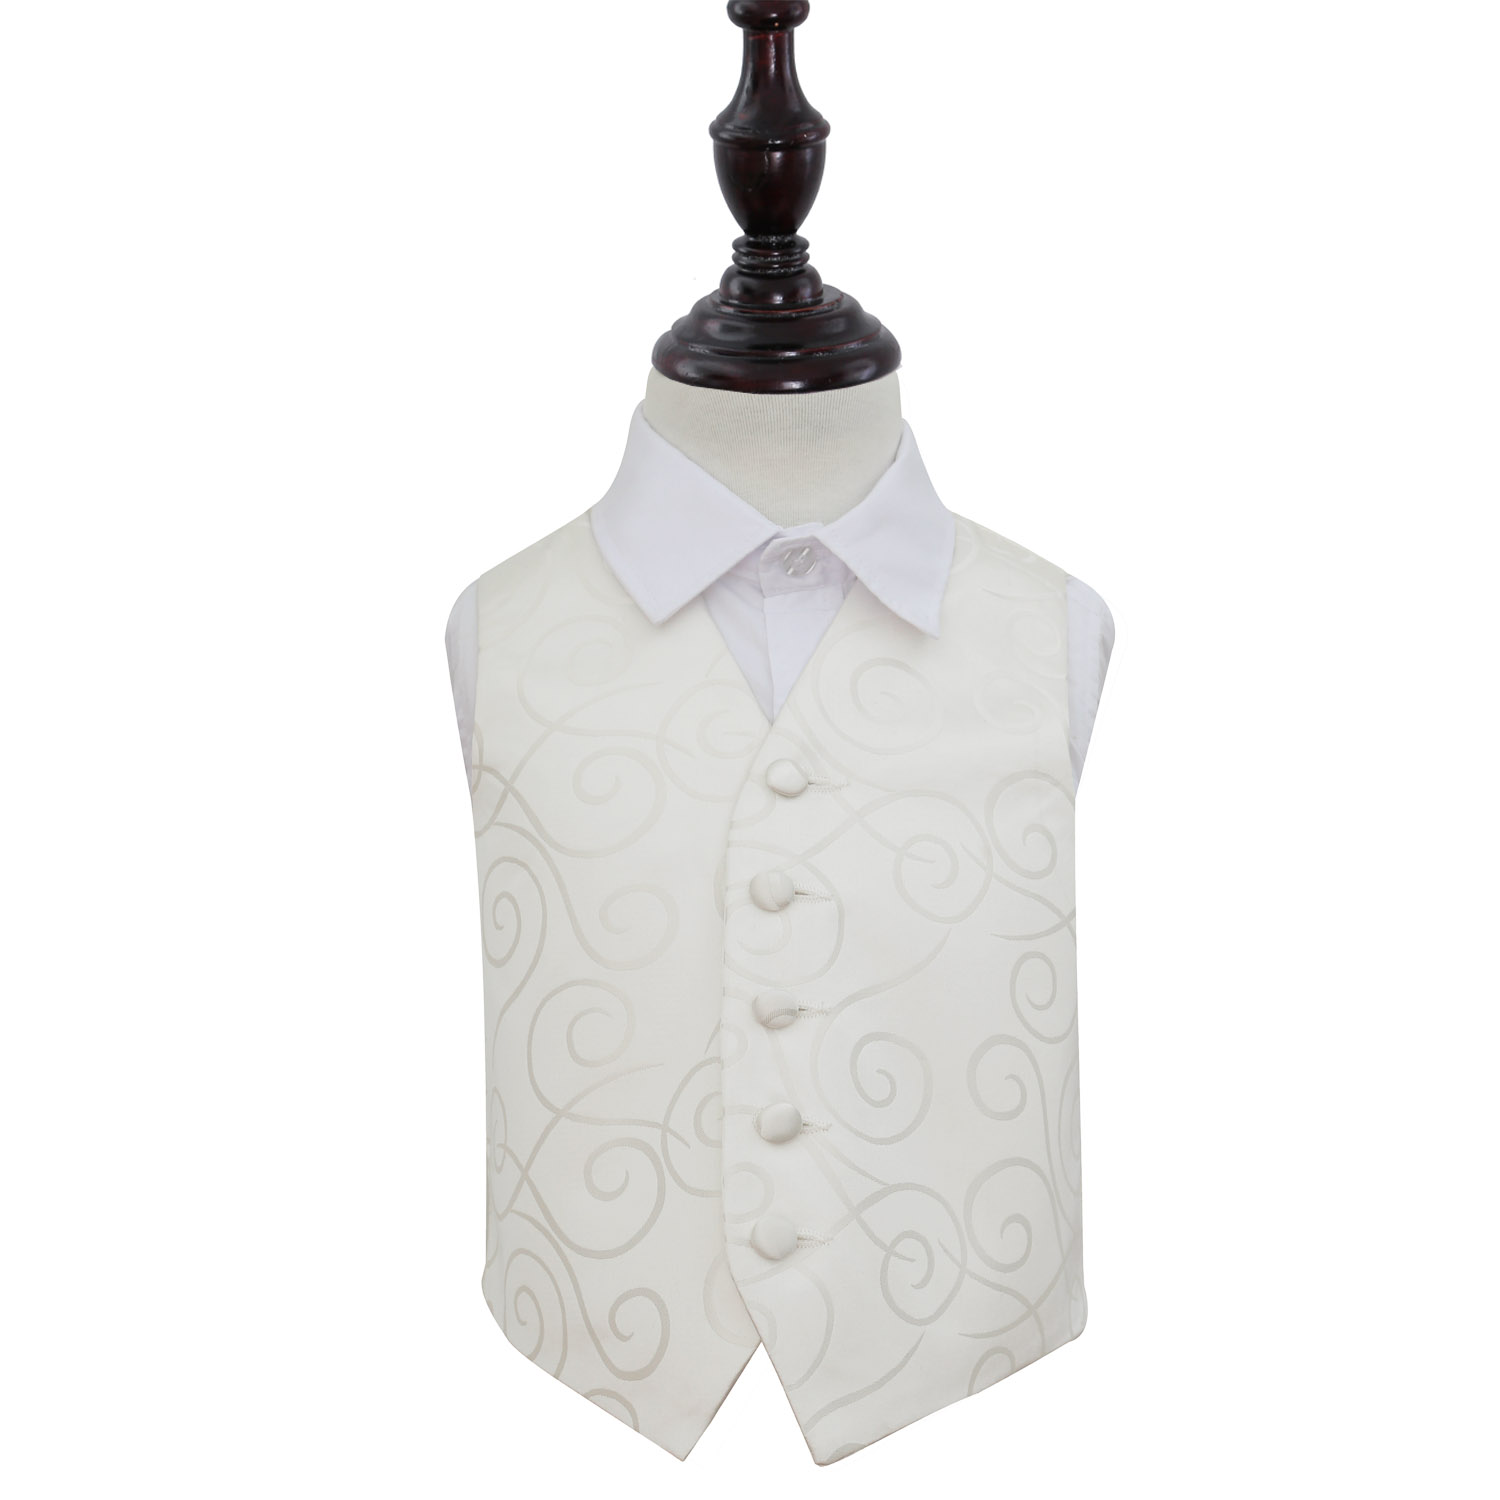 Find great deals on eBay for boys waistcoats. Shop with confidence.